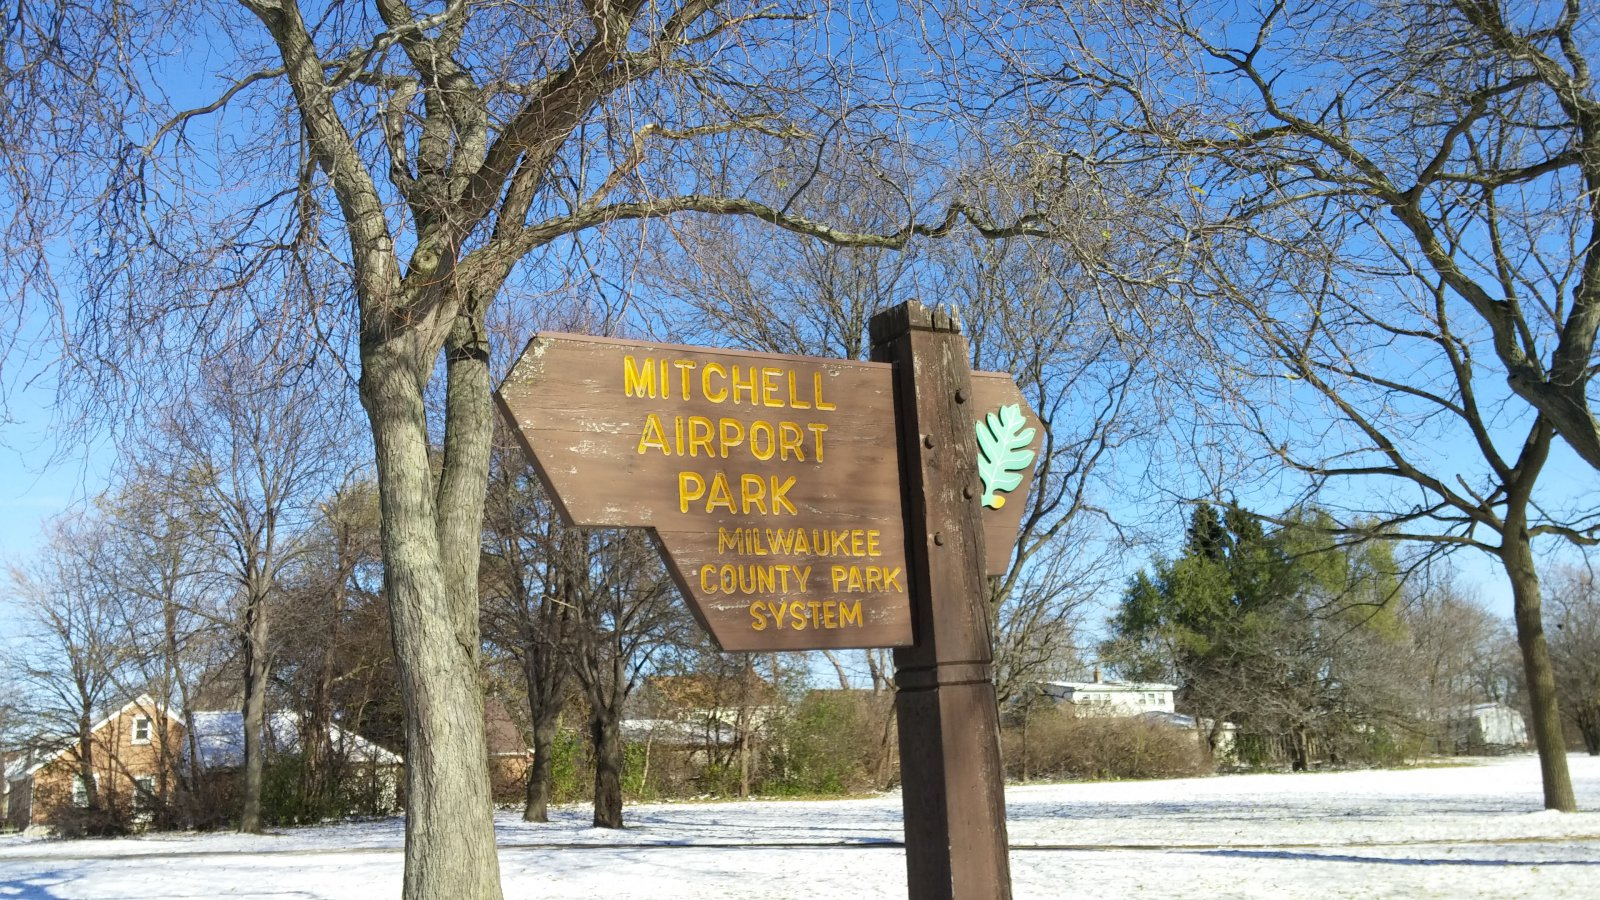 Mitchell Airport Park along E. Layton Avenue